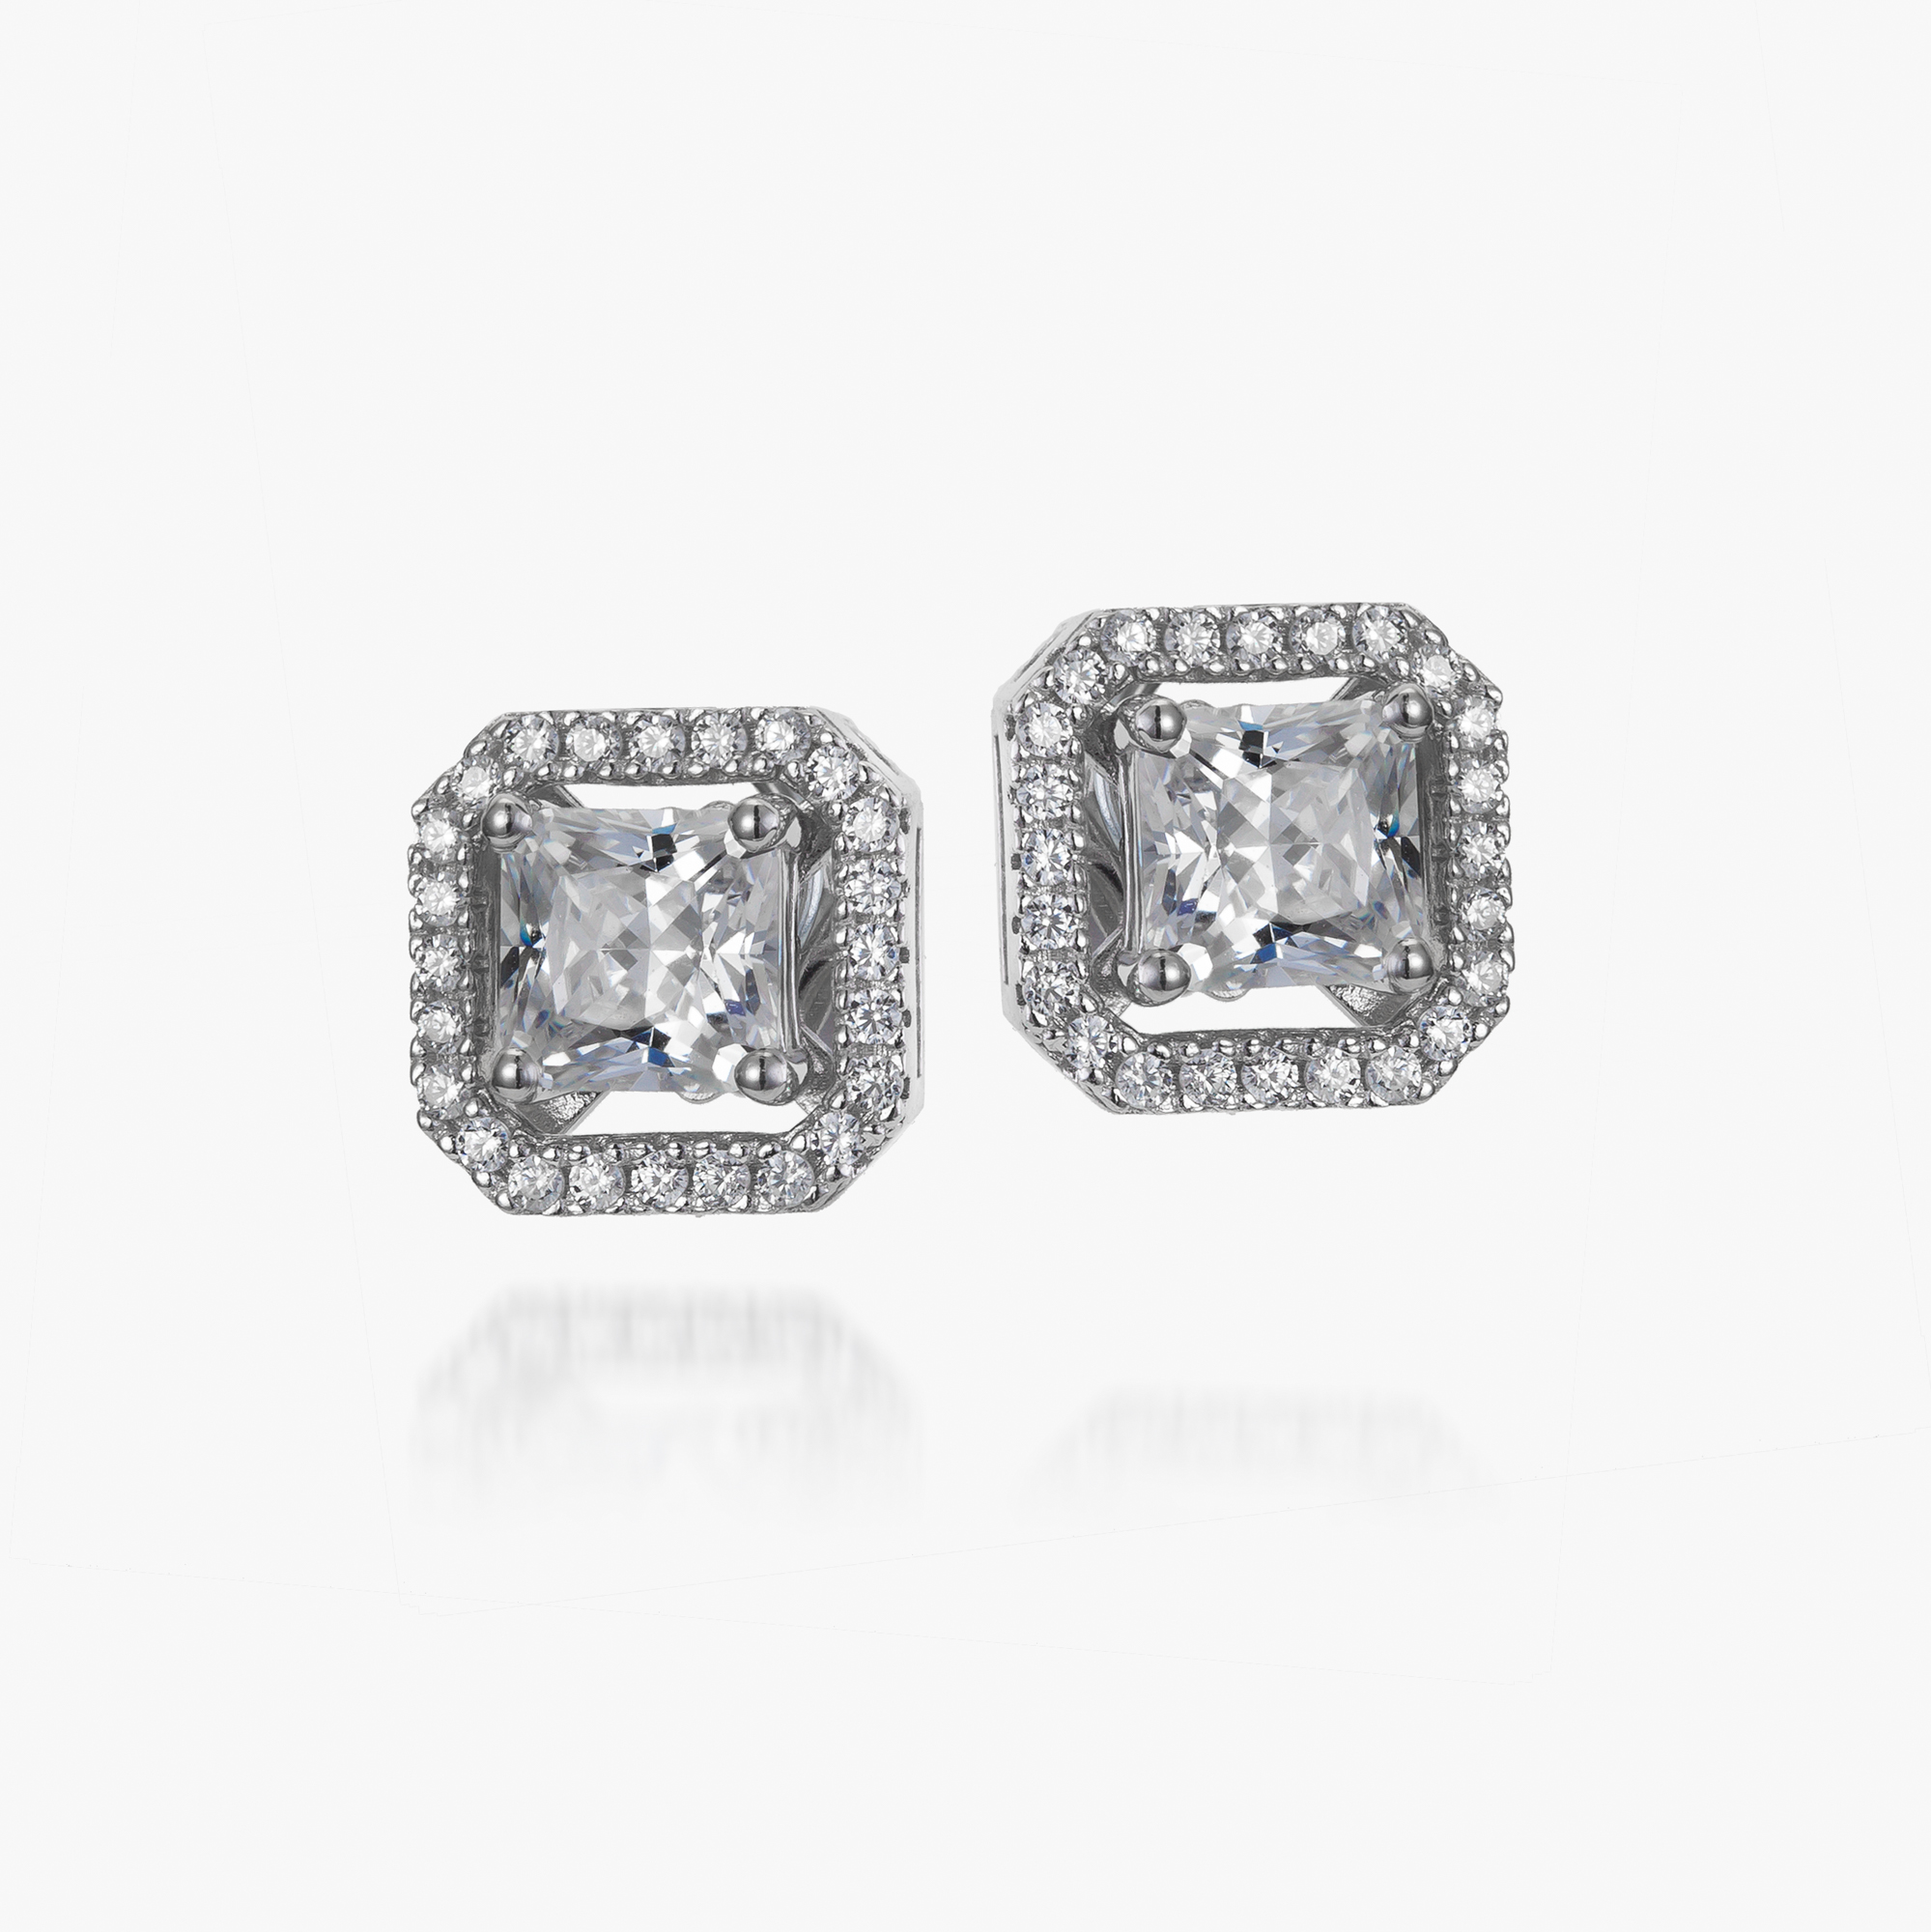 Who Sells Cubic Zirconia Rings